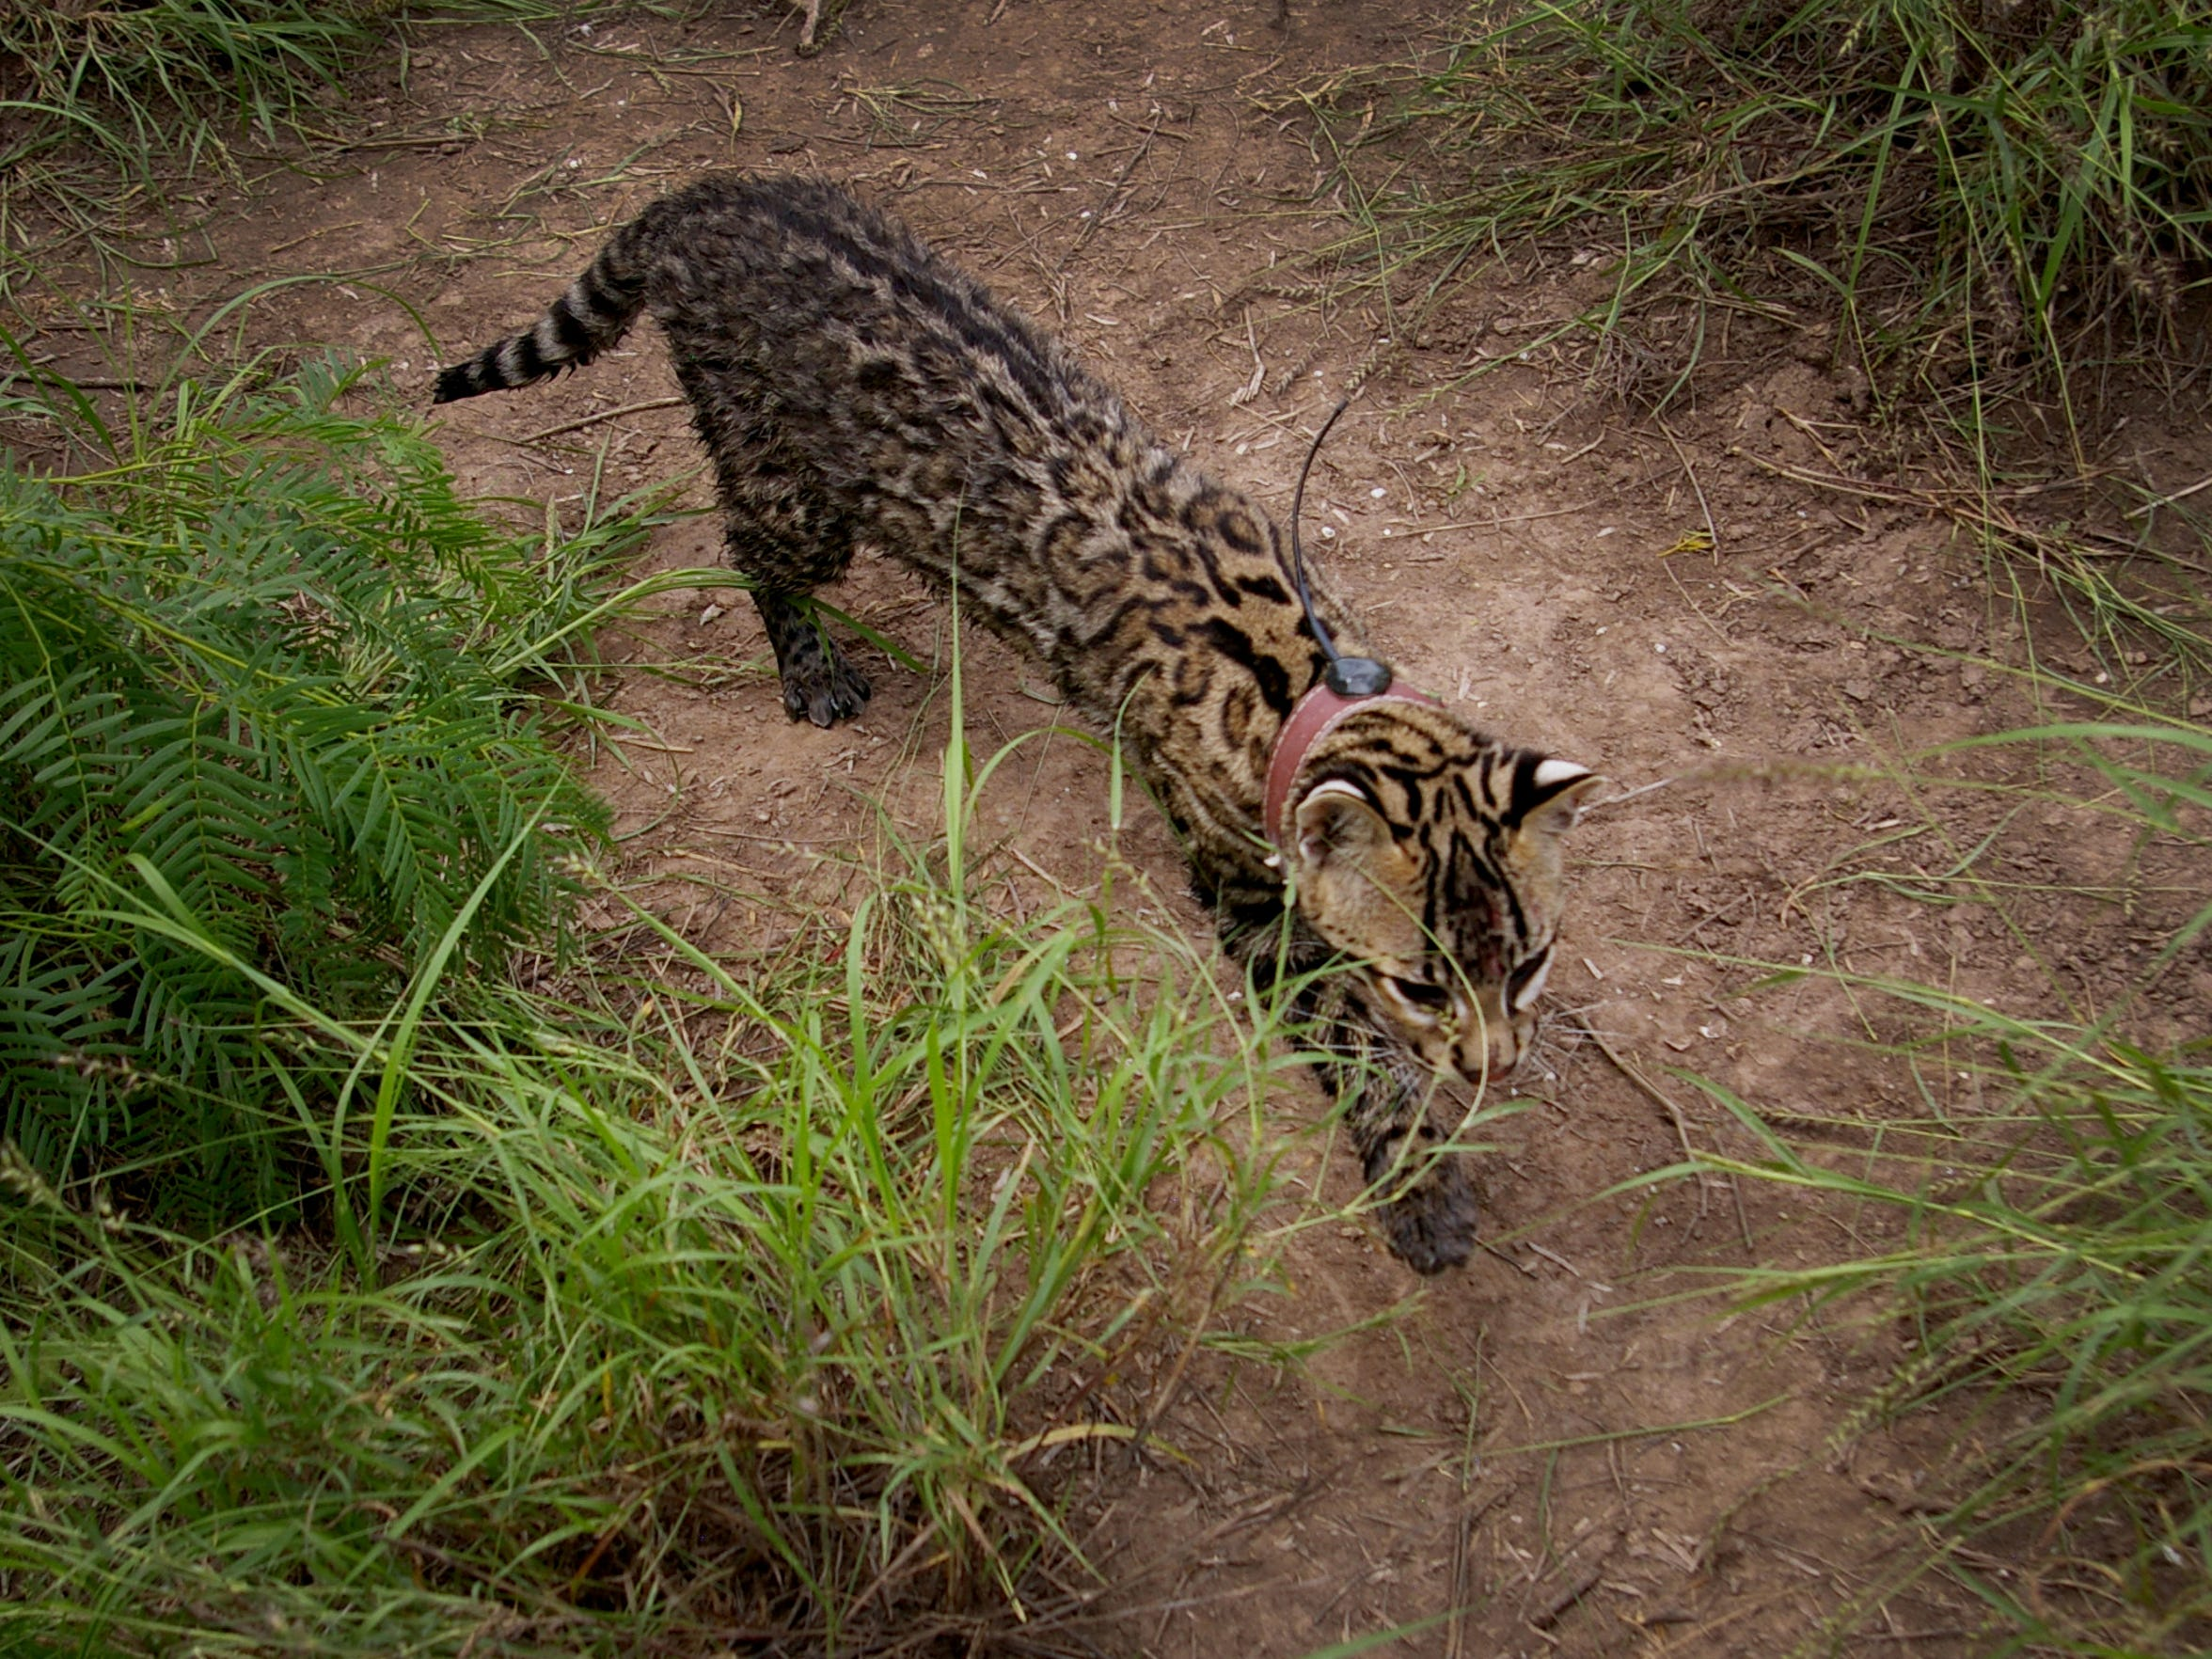 An ocelot released after capture at Laguna Atascosa National Wildlife Refuge in April 2015.